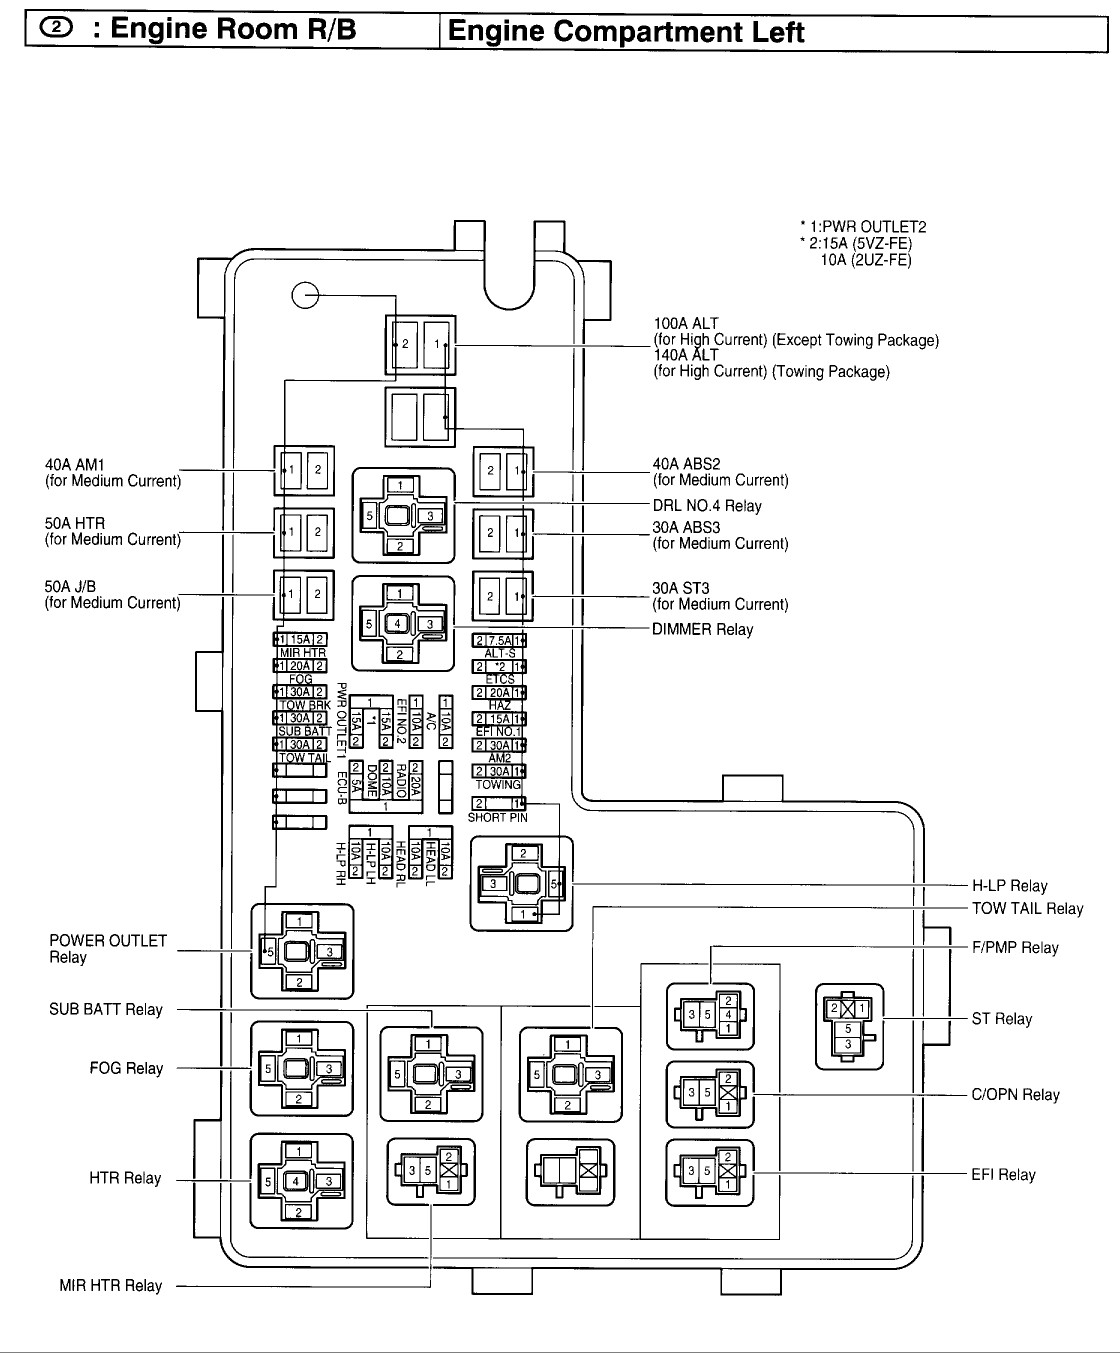 2010 tundra radio fuses wiring diagram for light switch u2022 rh drnatnews com 2002 toyota tundra trailer wiring diagram 2002 tundra radio wiring diagram